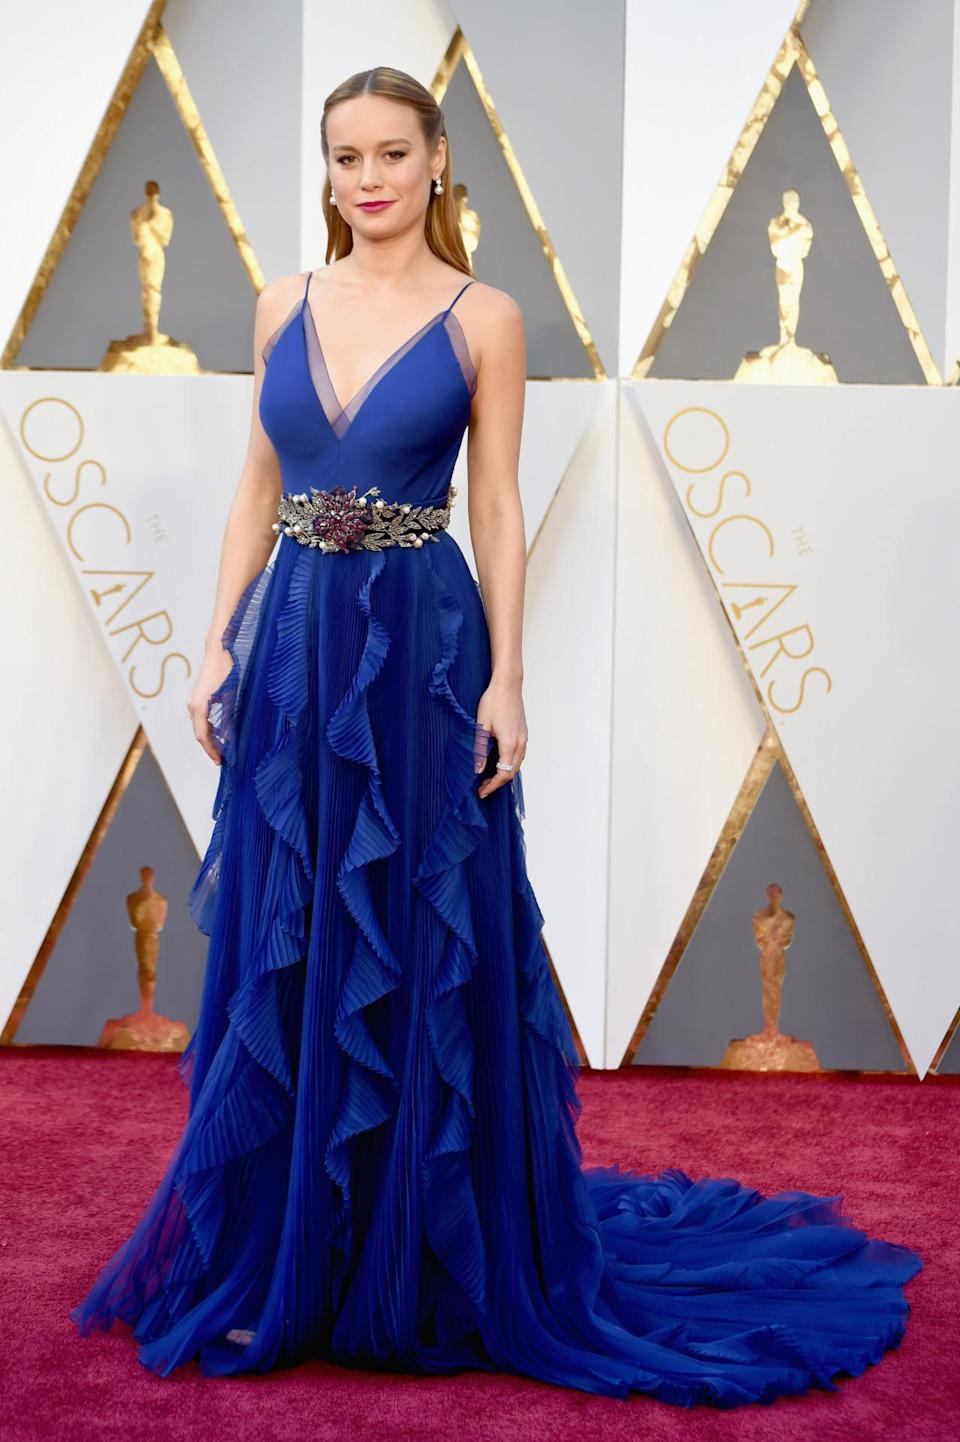 <p>Brie Larson aims to use fashion to reflect what her soul looks like, but if that's the case, then her soul is super-confused. Wearing a busy royal blue dress from Gucci, she accessorized with an encrusted belt, then proceeded to add even more bling with hair jewels. <i>(Photo: Getty Images)</i></p>